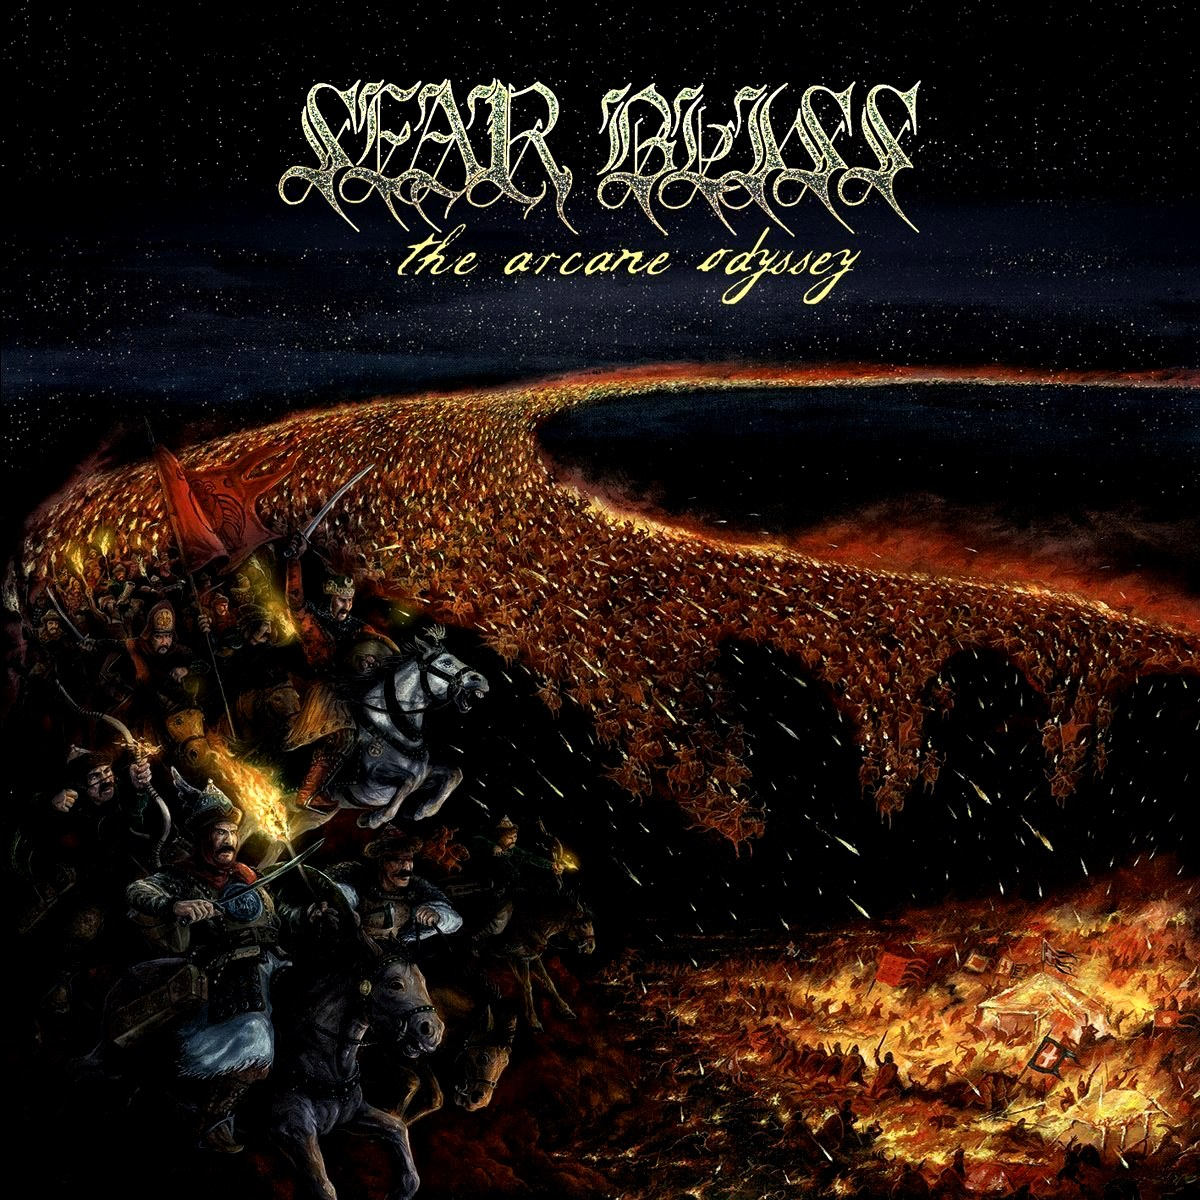 Review for Sear Bliss - The Arcane Odyssey